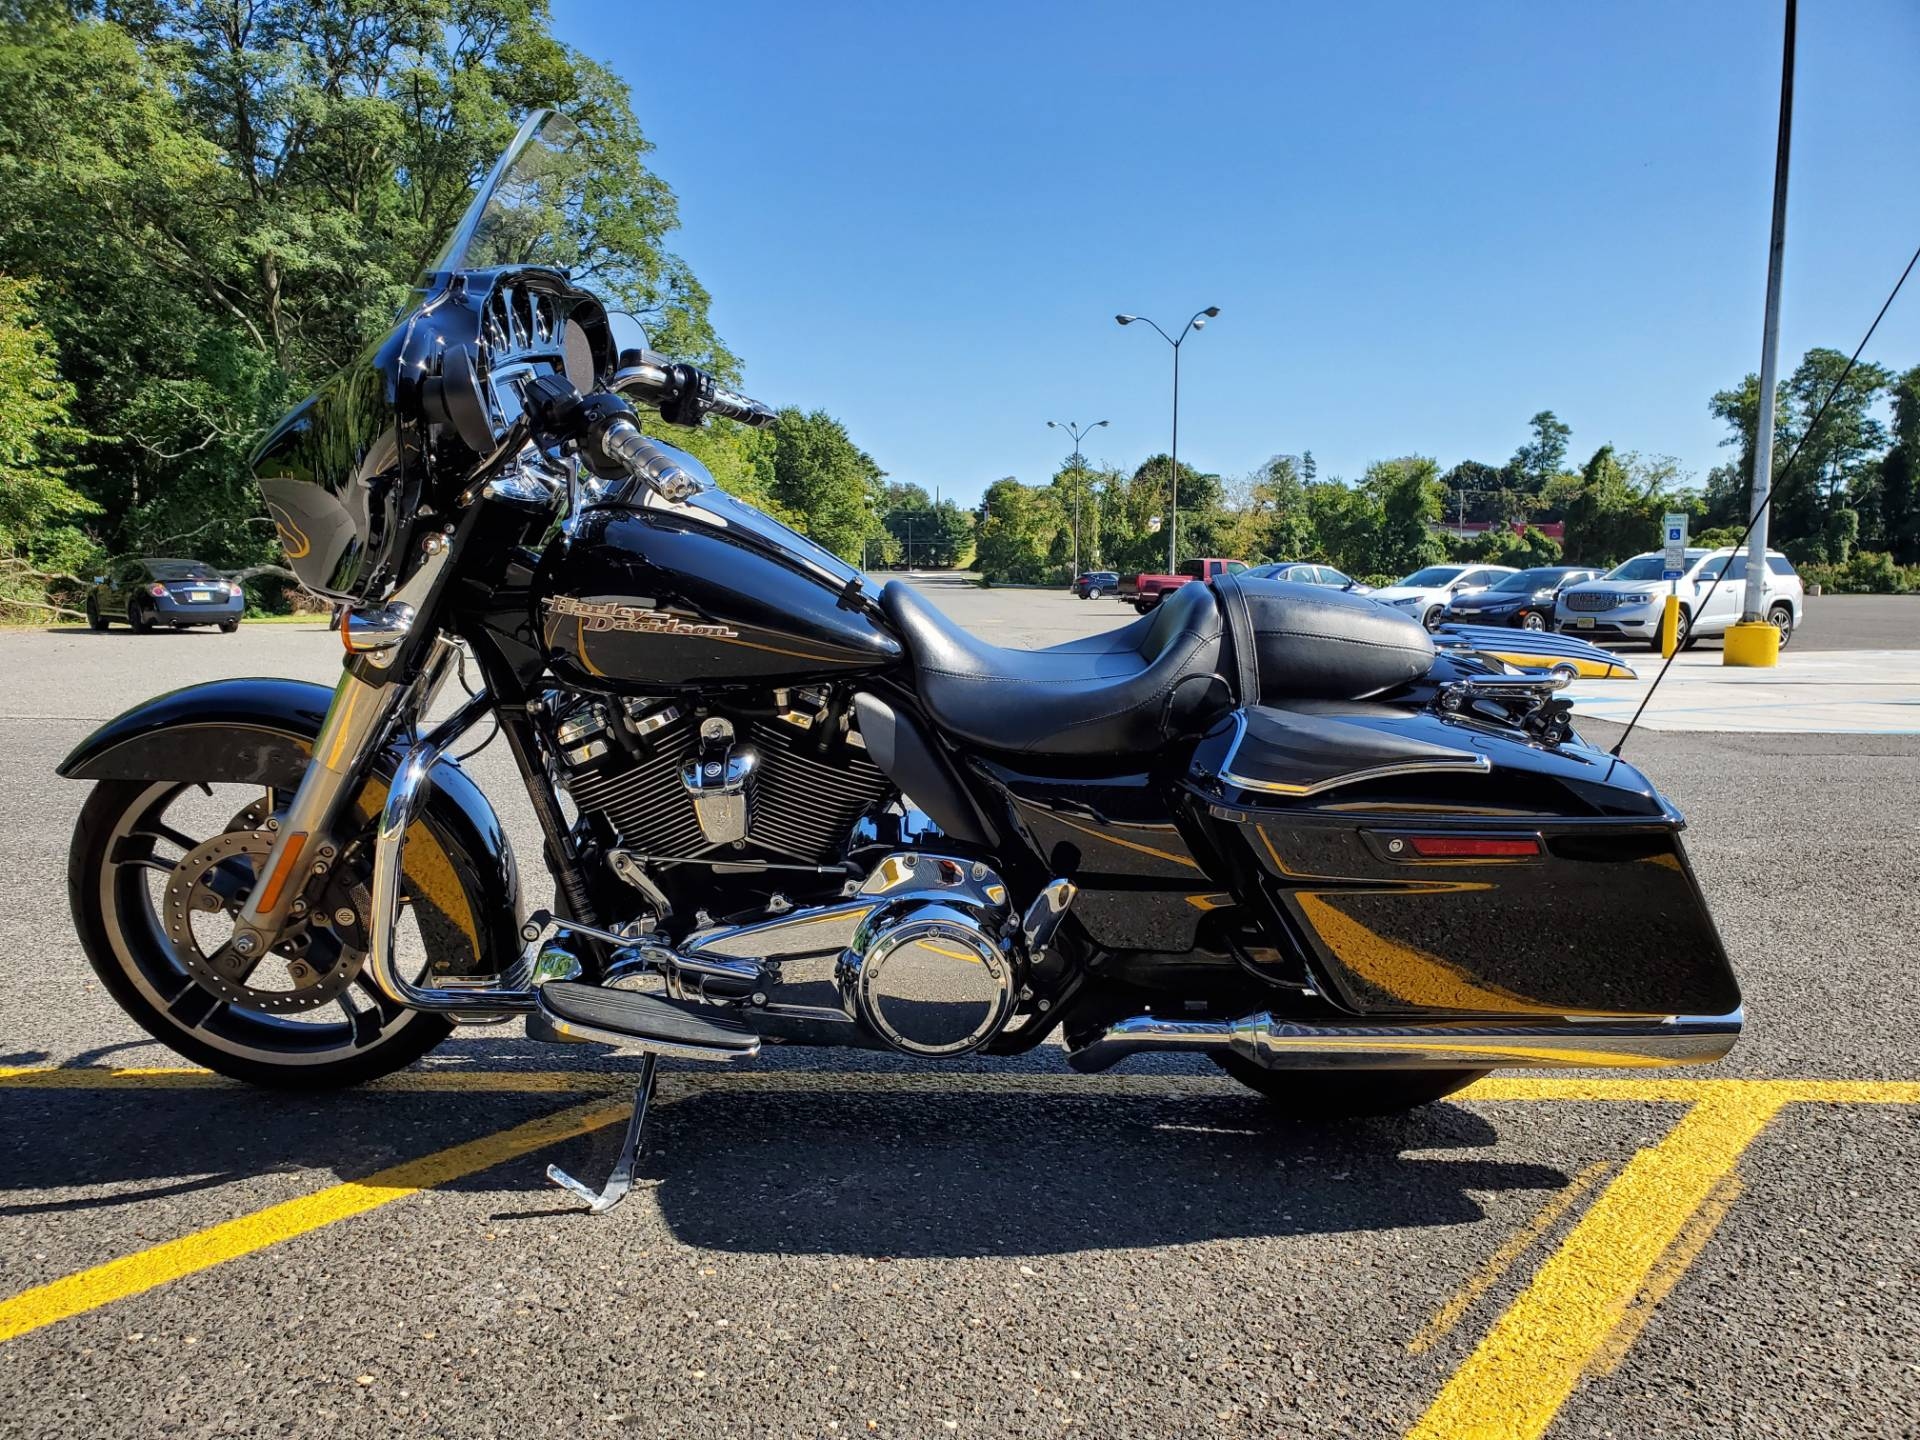 2017 Harley-Davidson Street Glide Special in West Long Branch, New Jersey - Photo 2